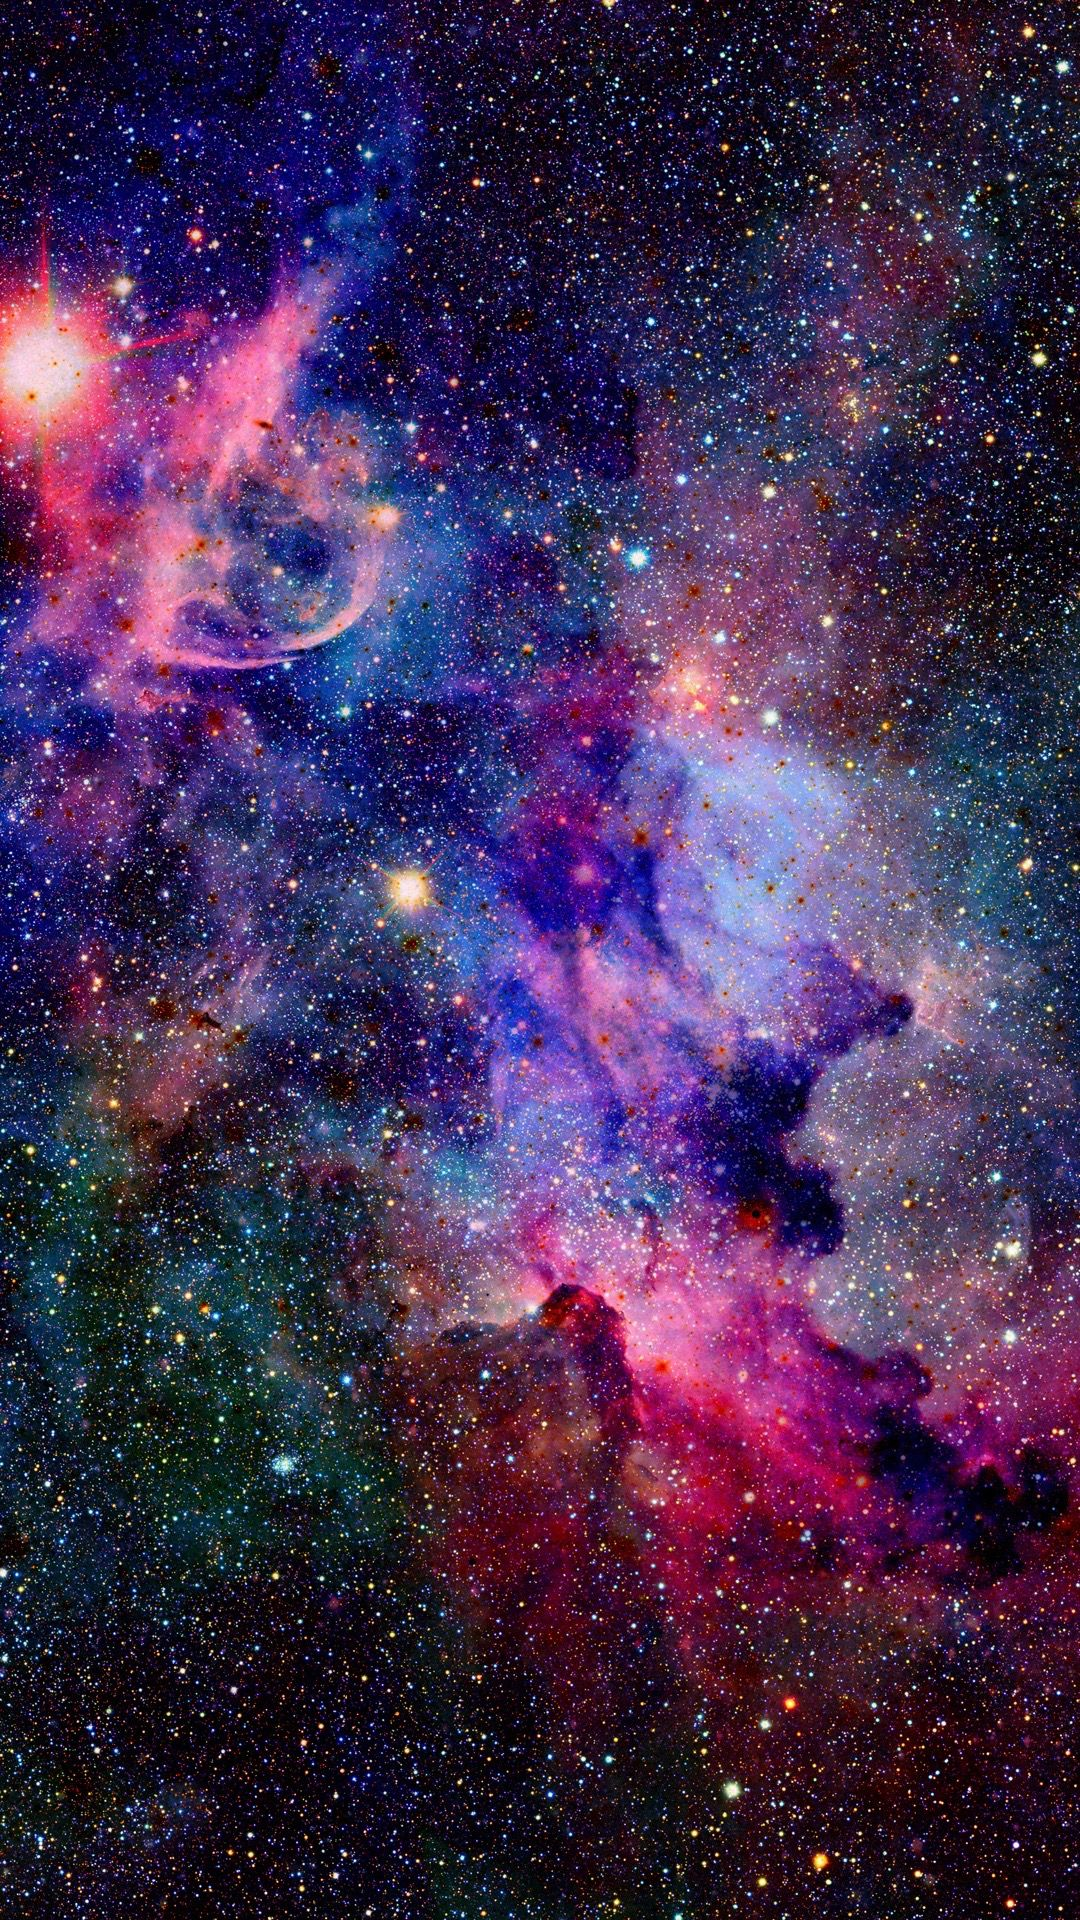 Space stars amazing awesome wallpaper Galaxy wallpaper 1080x1920